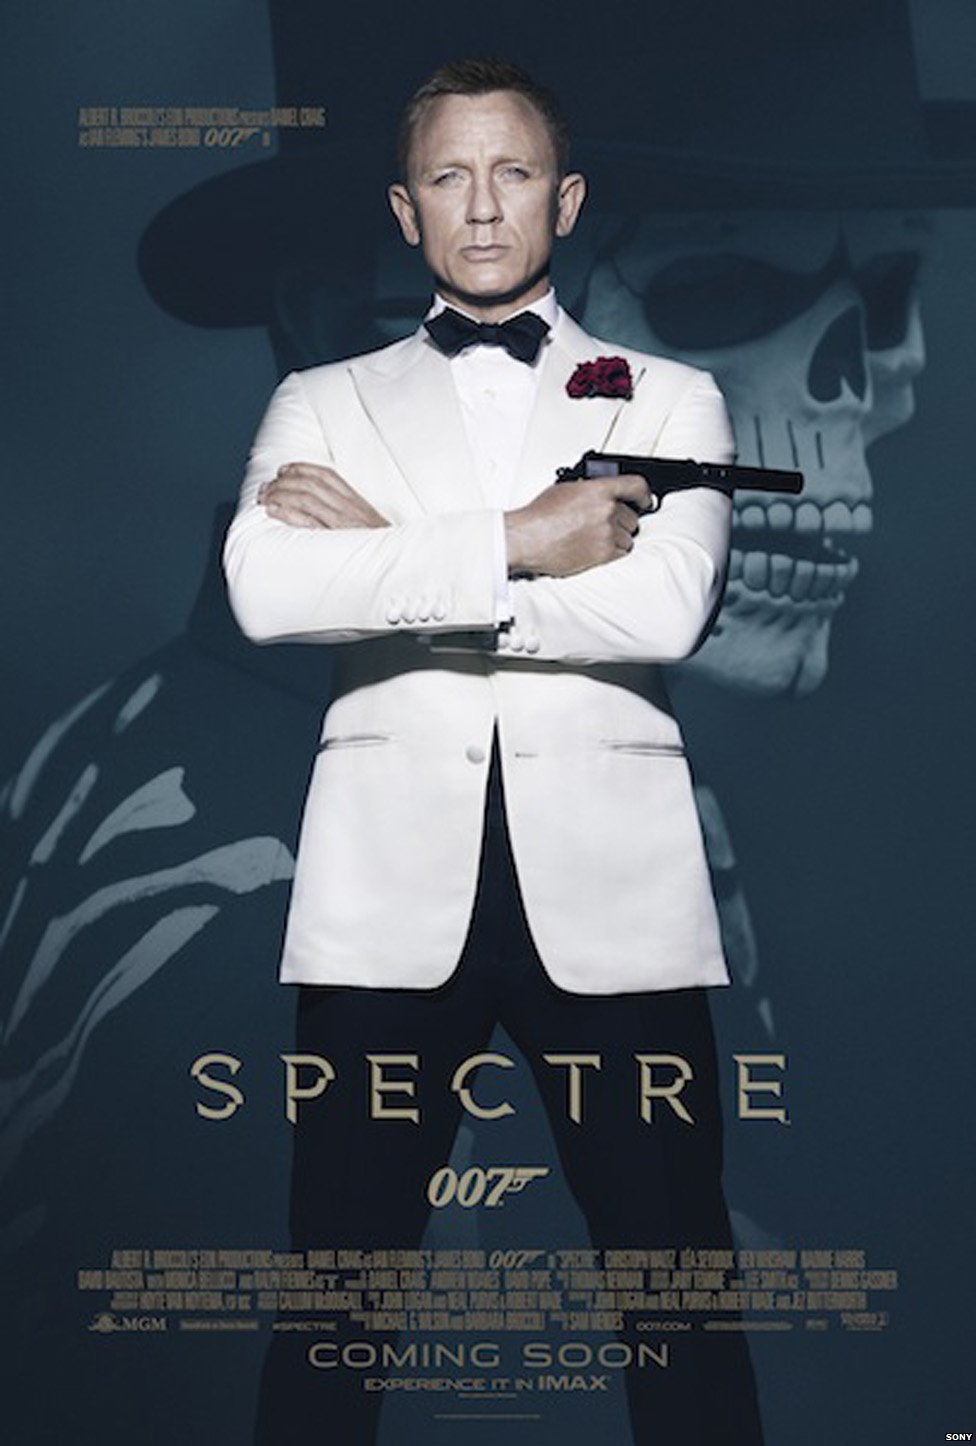 Daniel Craig on the official Spectre poster